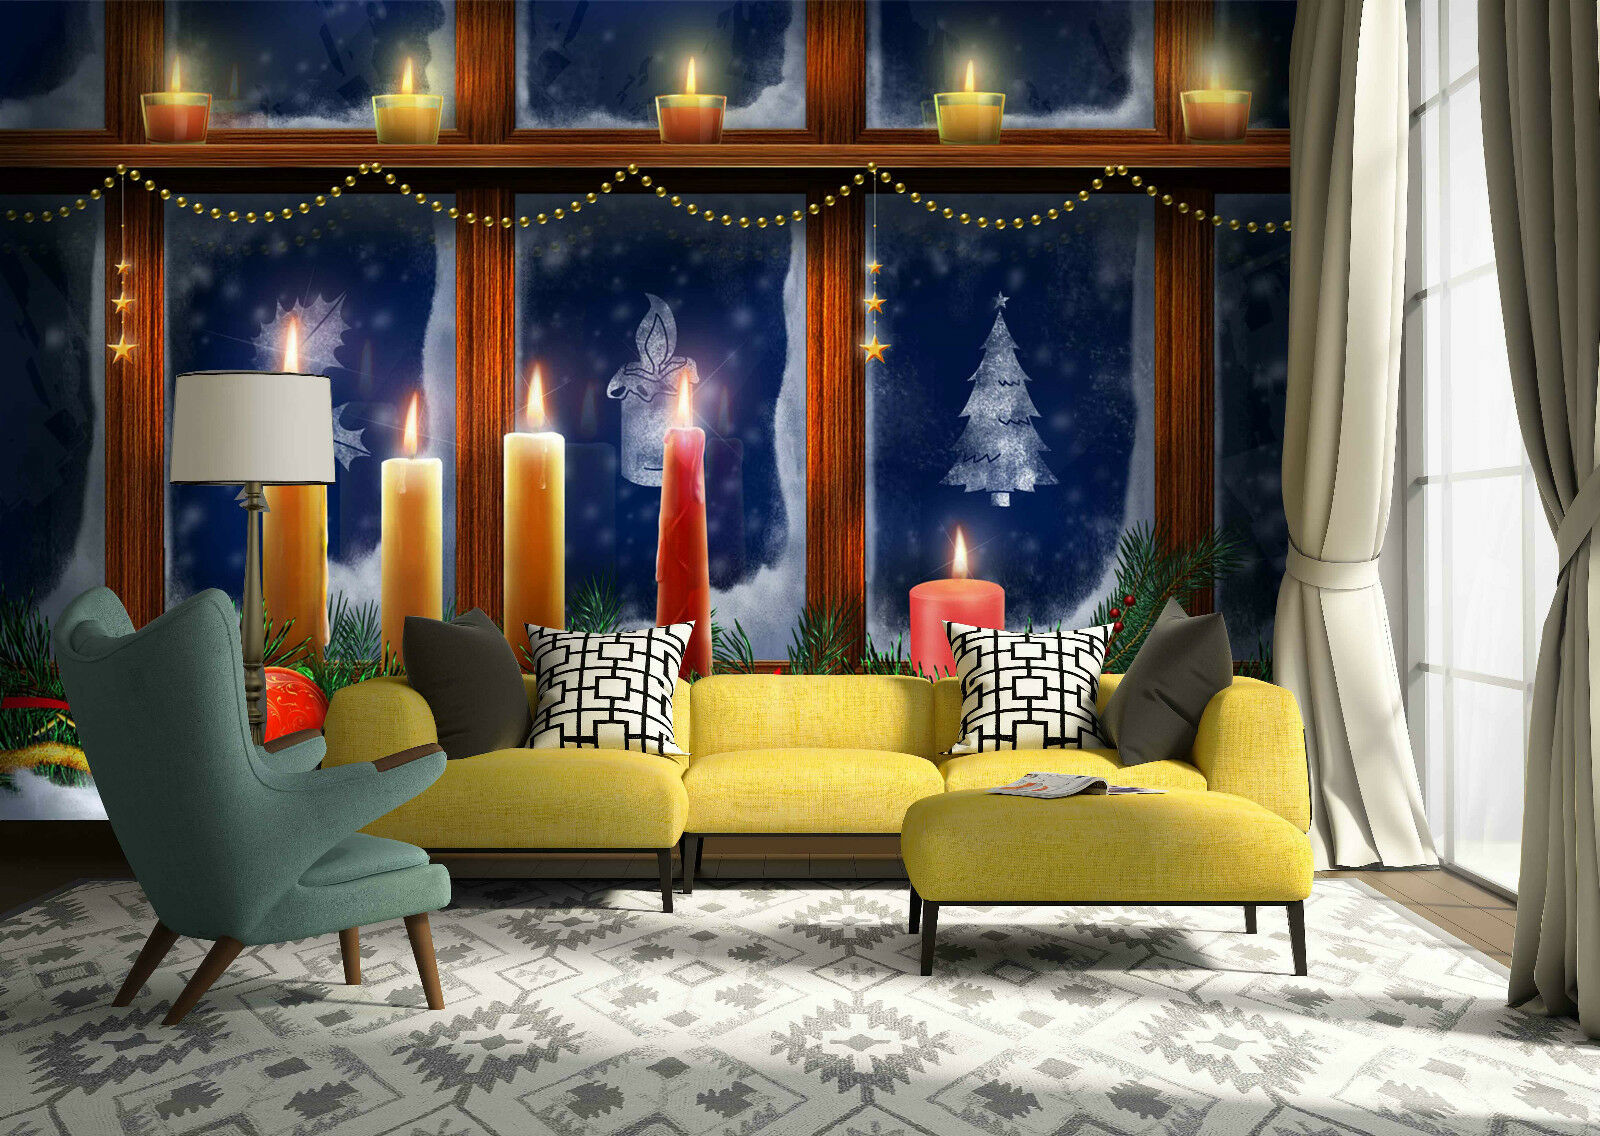 3D Candle Cheer 63 Wall Paper Wall Print Decal Wall Deco Indoor Wall